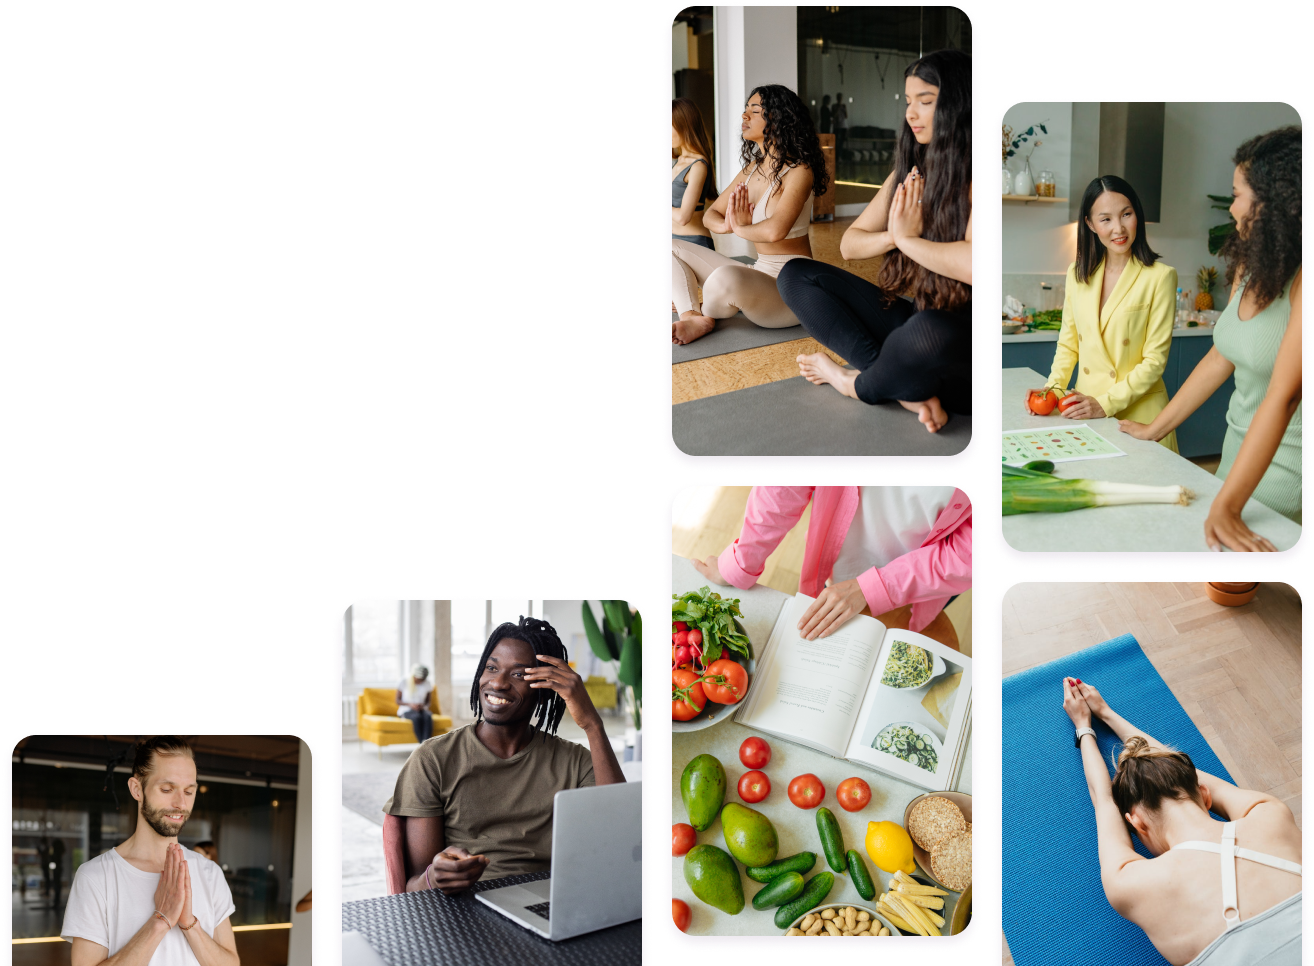 Image consists of several images depicting people engaged in various wellness activities, such as yoga, meditation, cooking classes